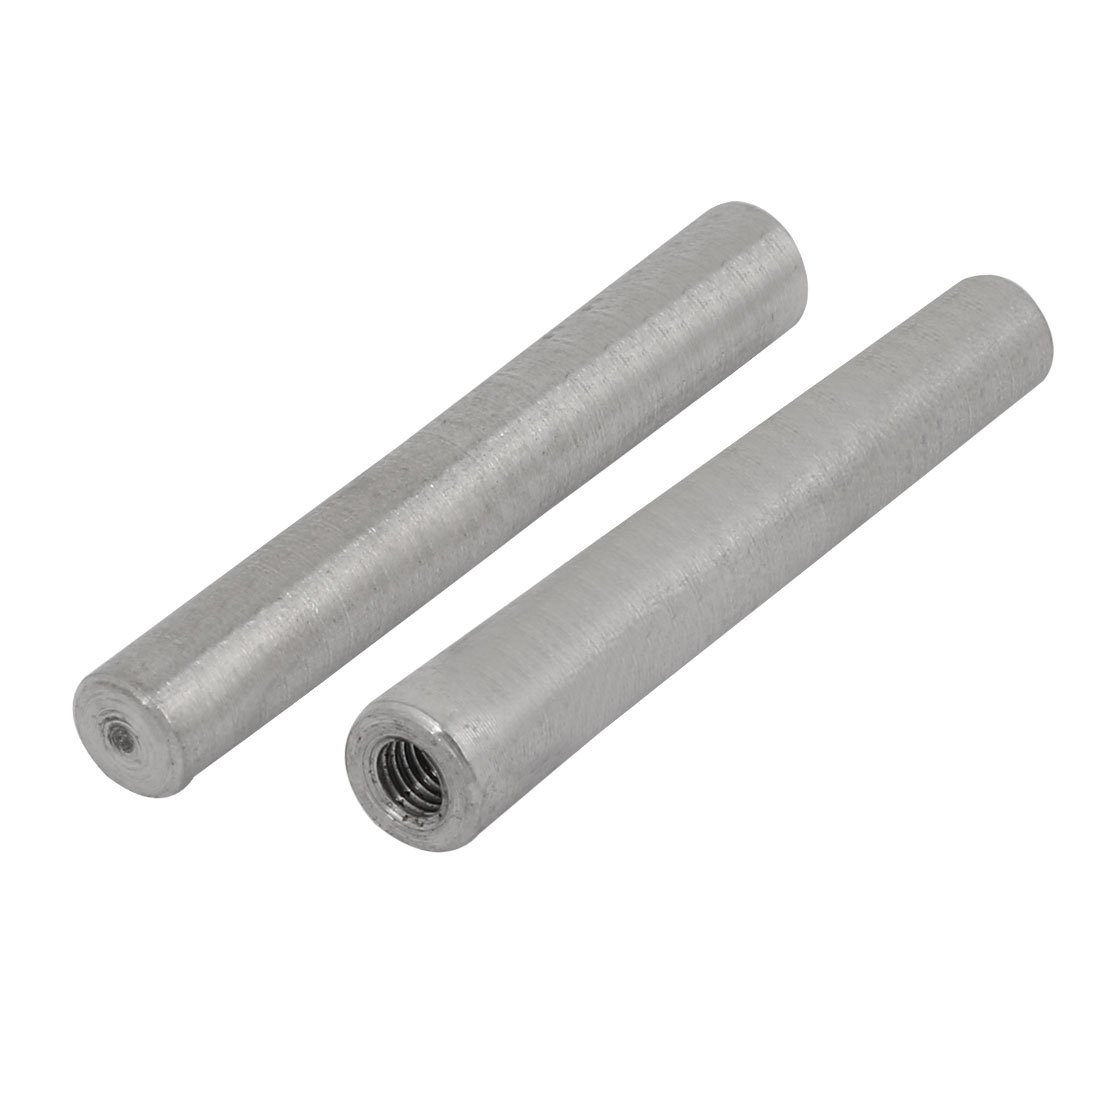 uxcell 2Pcs 304 Stainless Steel 8mm Nominal Dia 60mm Length M5 Female Thread Taper Pin